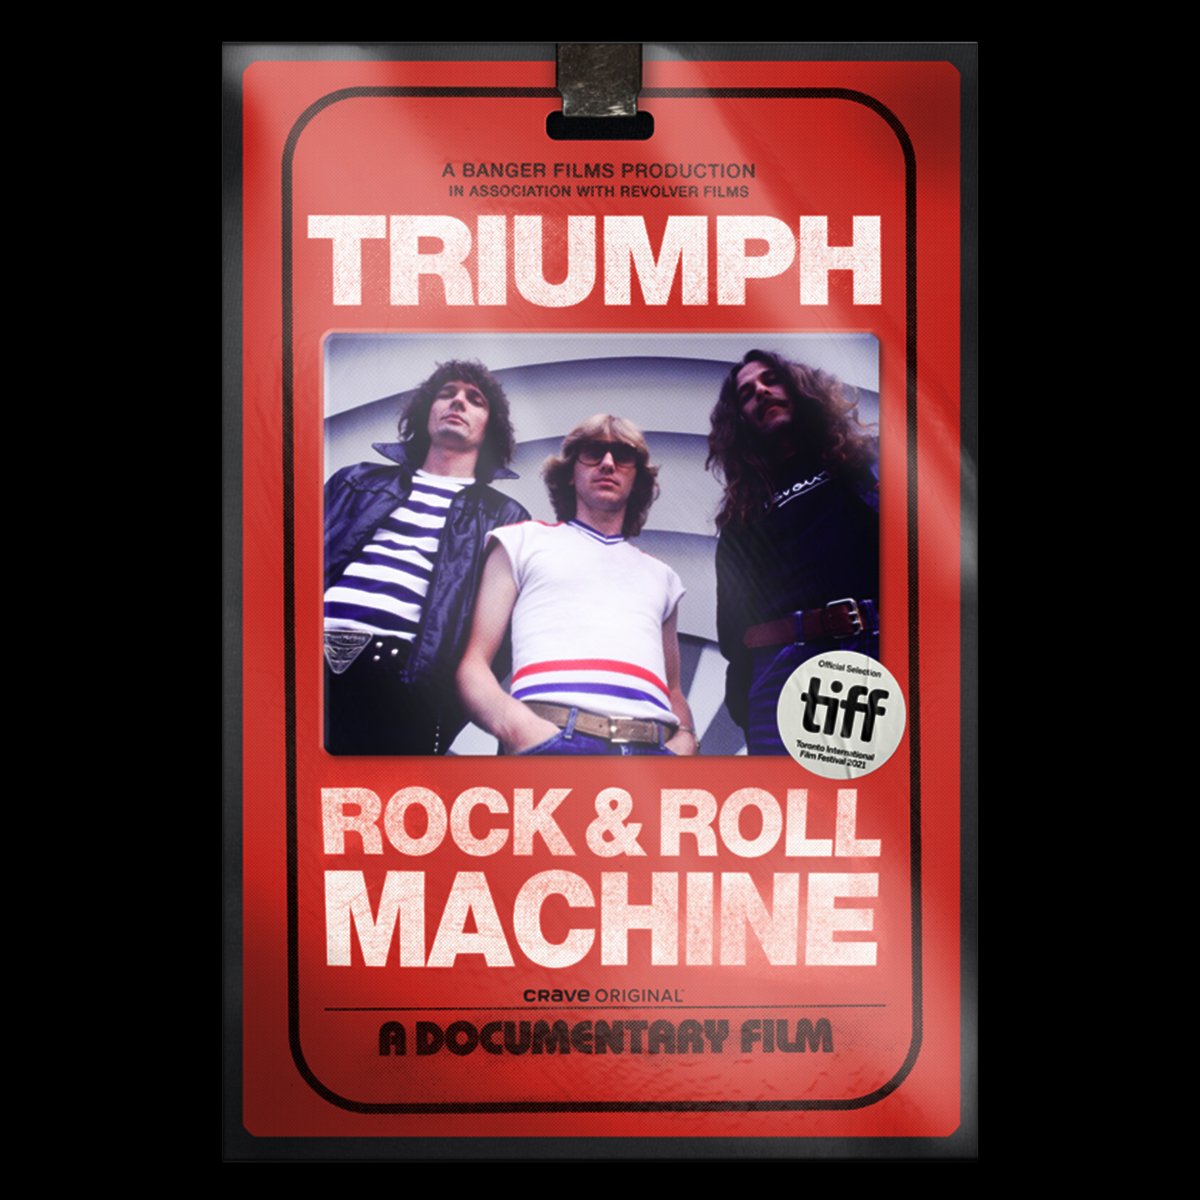 """""""Triumph: Rock & Roll Machine"""" Feature Doc Makes Its World Premiere At The Toronto International Film Festival (TIFF), Friday, September 10th"""